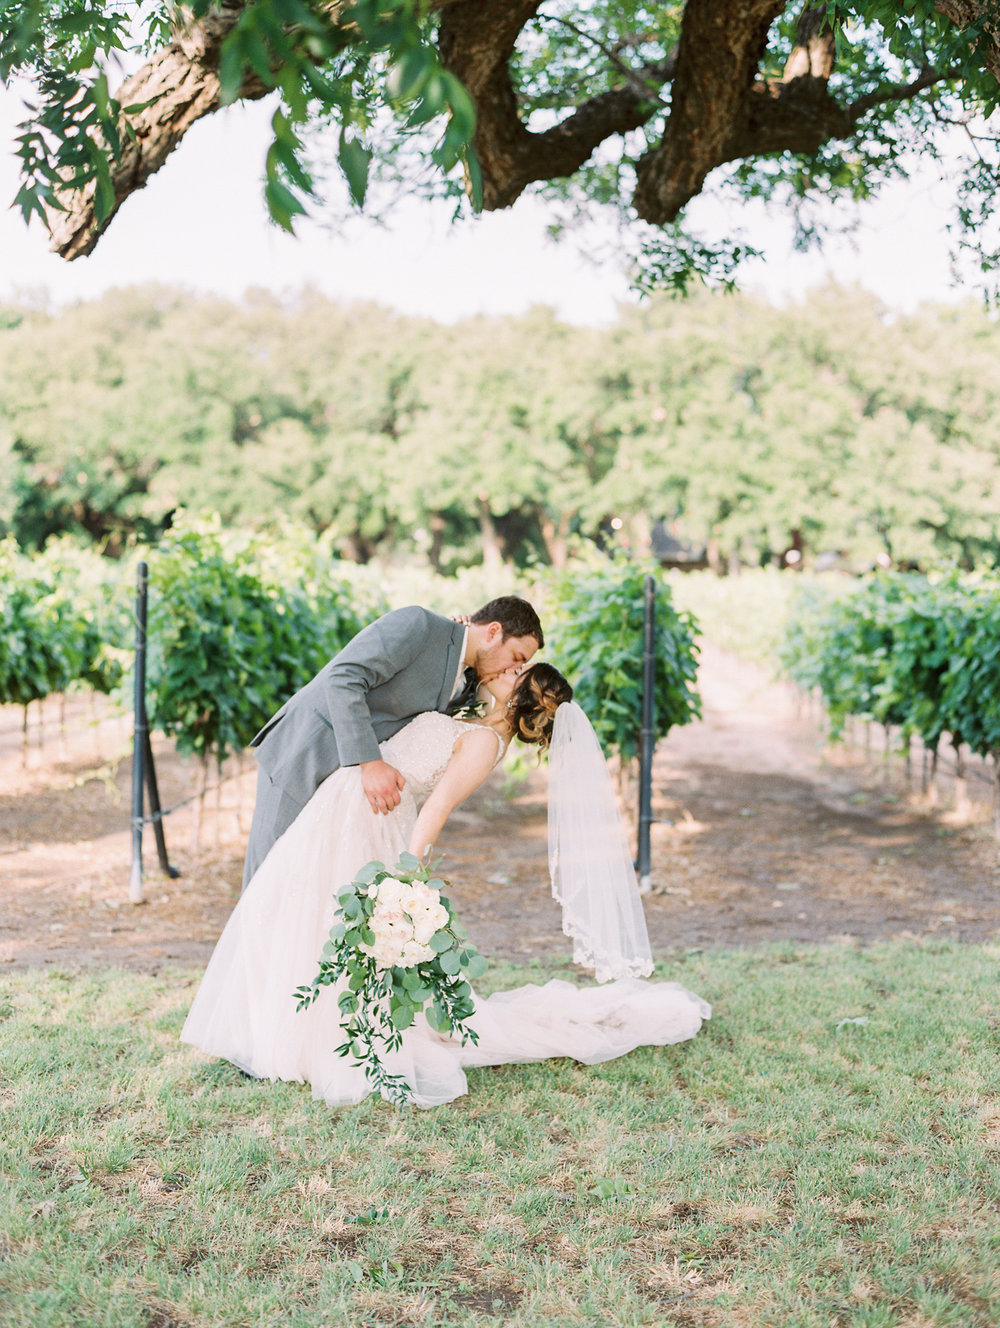 Elegant Spring Vineyard Wedding | Film Wedding Photographer | Austin Wedding Photographer | Bride and Groom Romantic Photos | Britni Dean Photography // britnidean.com